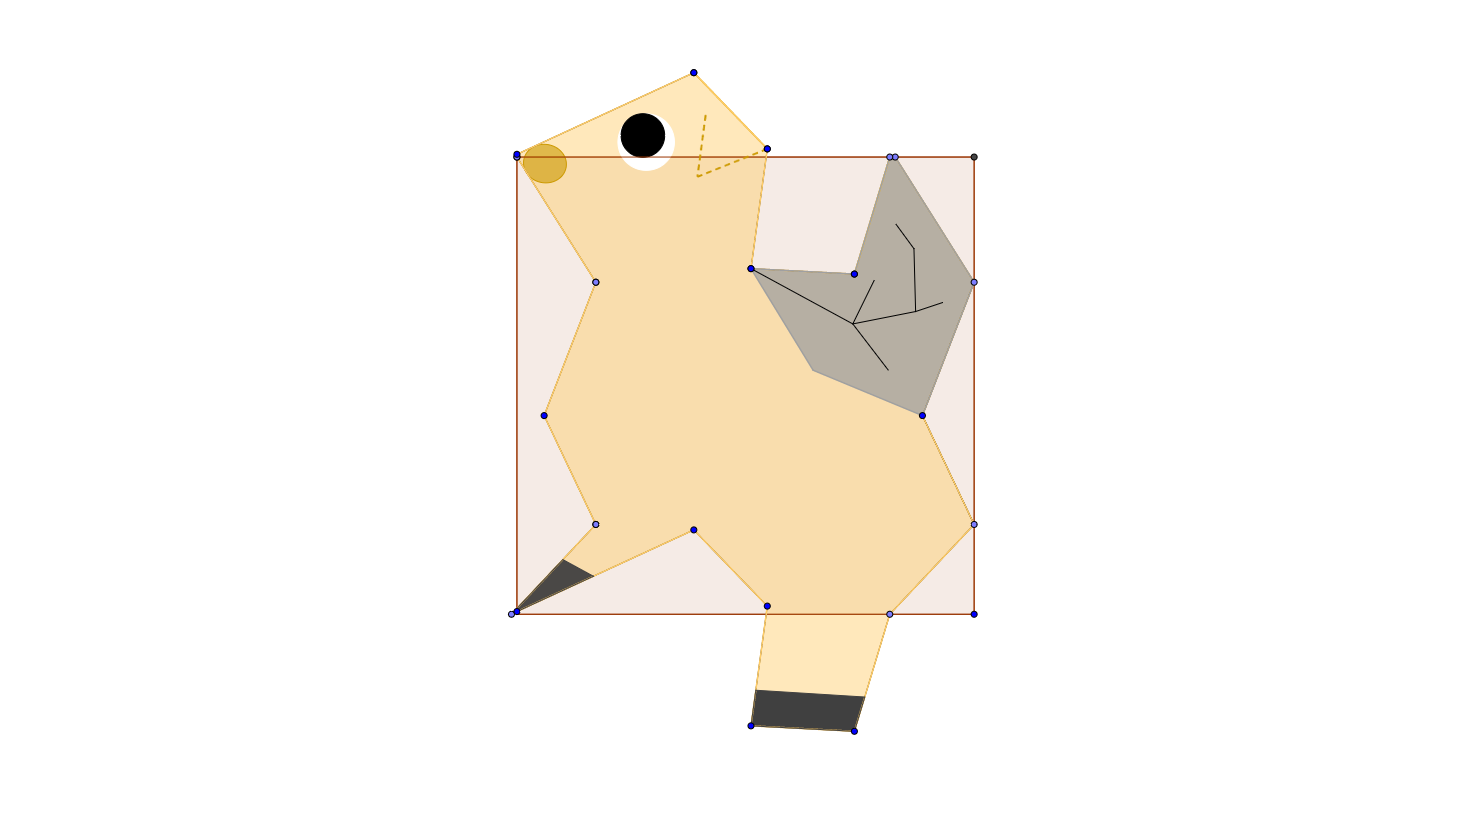 Tessellation Step 5: Decorating your Tessellation Object